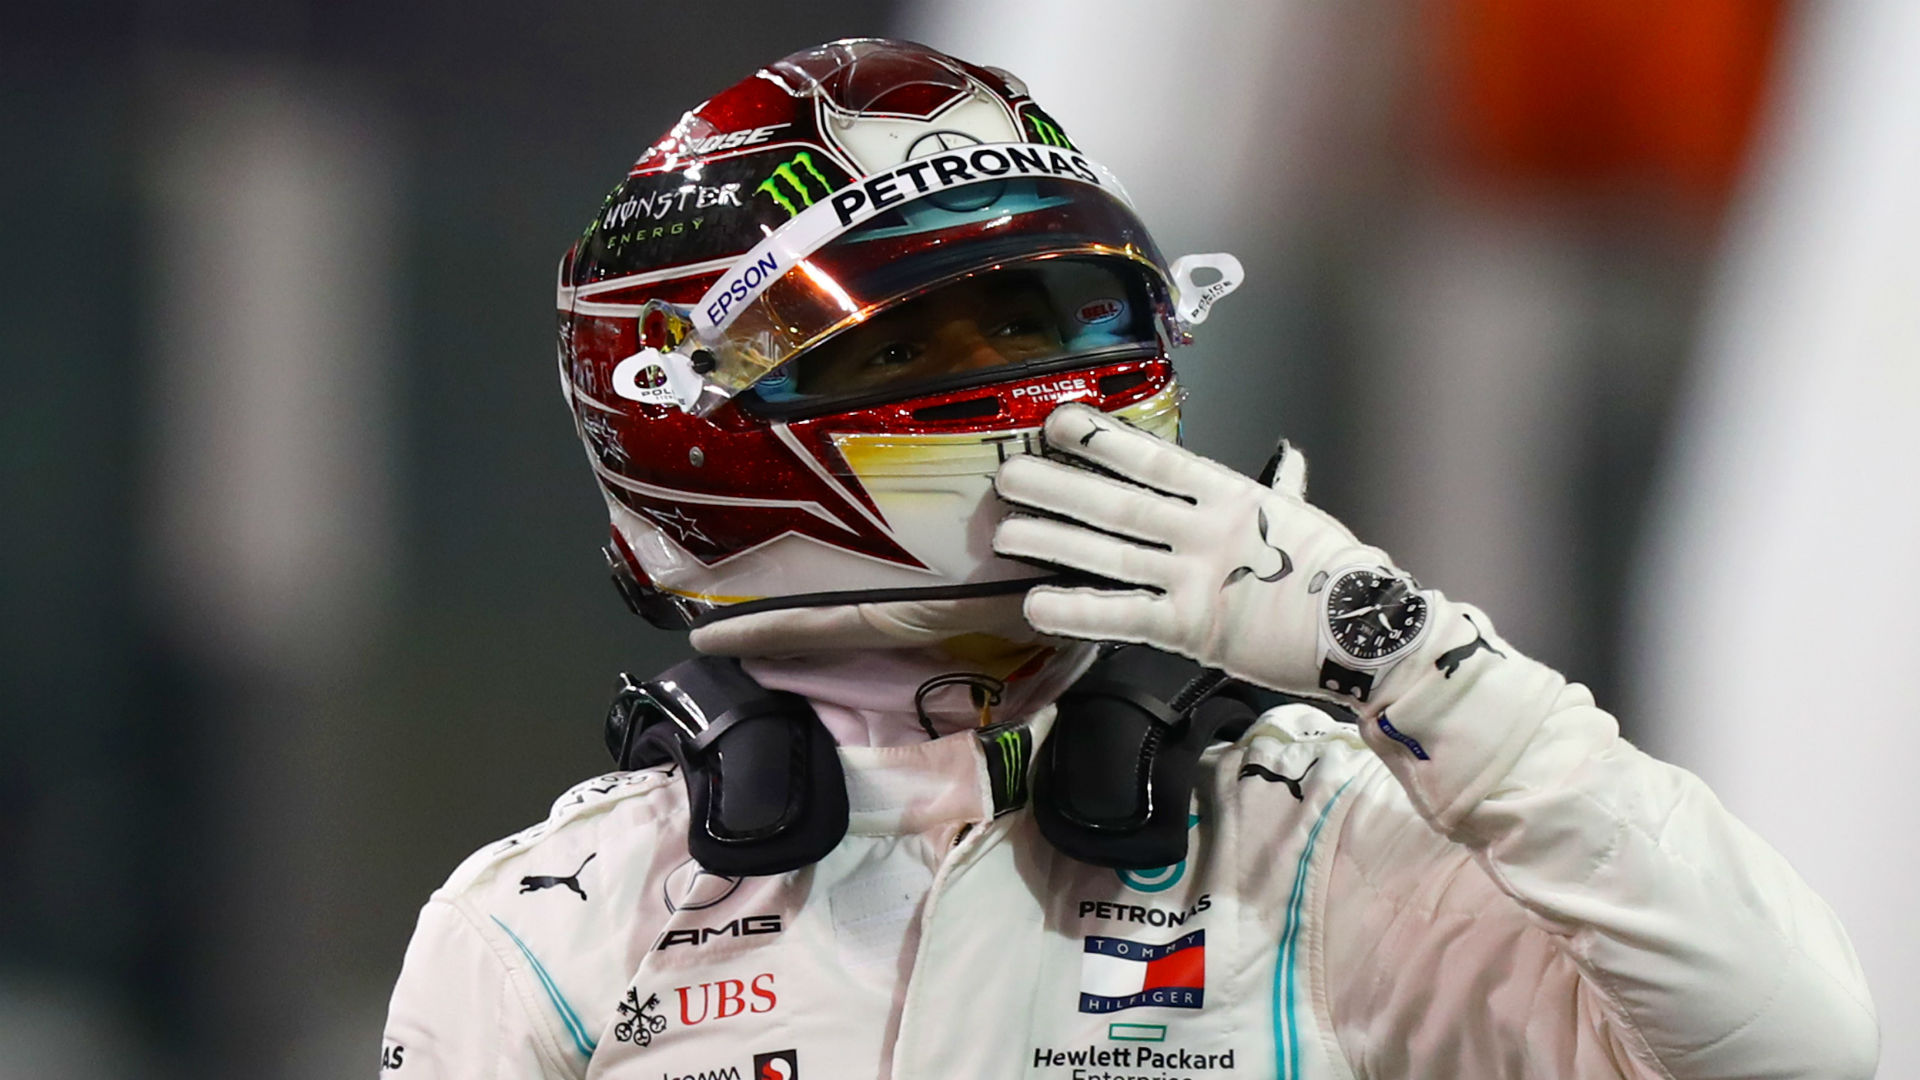 The first compliment I've had from Ferrari! - Hamilton thanks Binotto after public flirtation